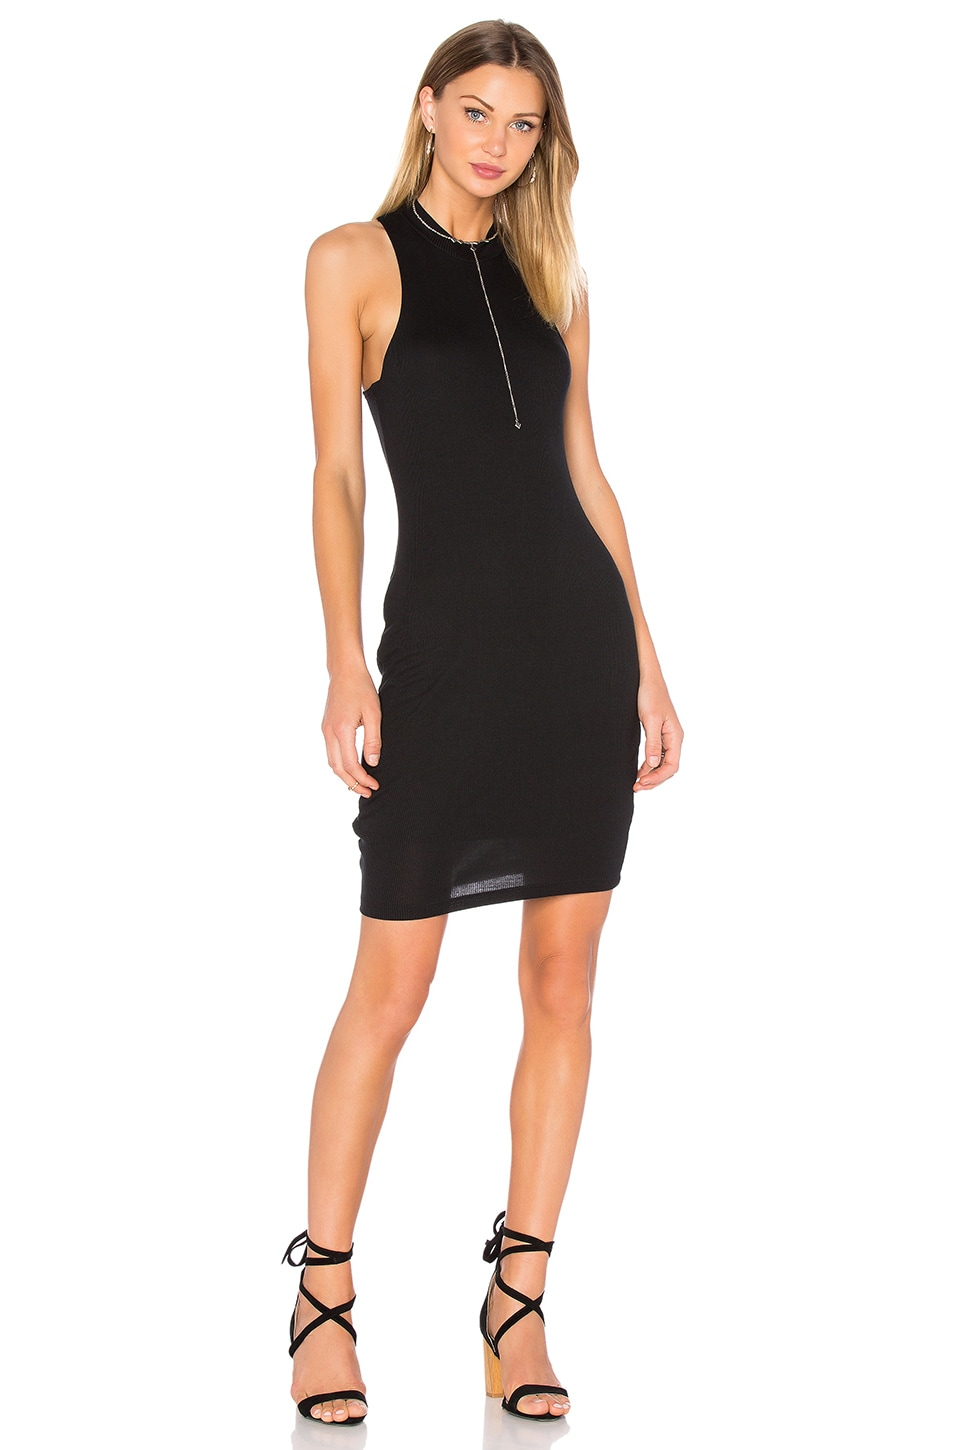 Bella Luxx High Neck Tank Dress in Black